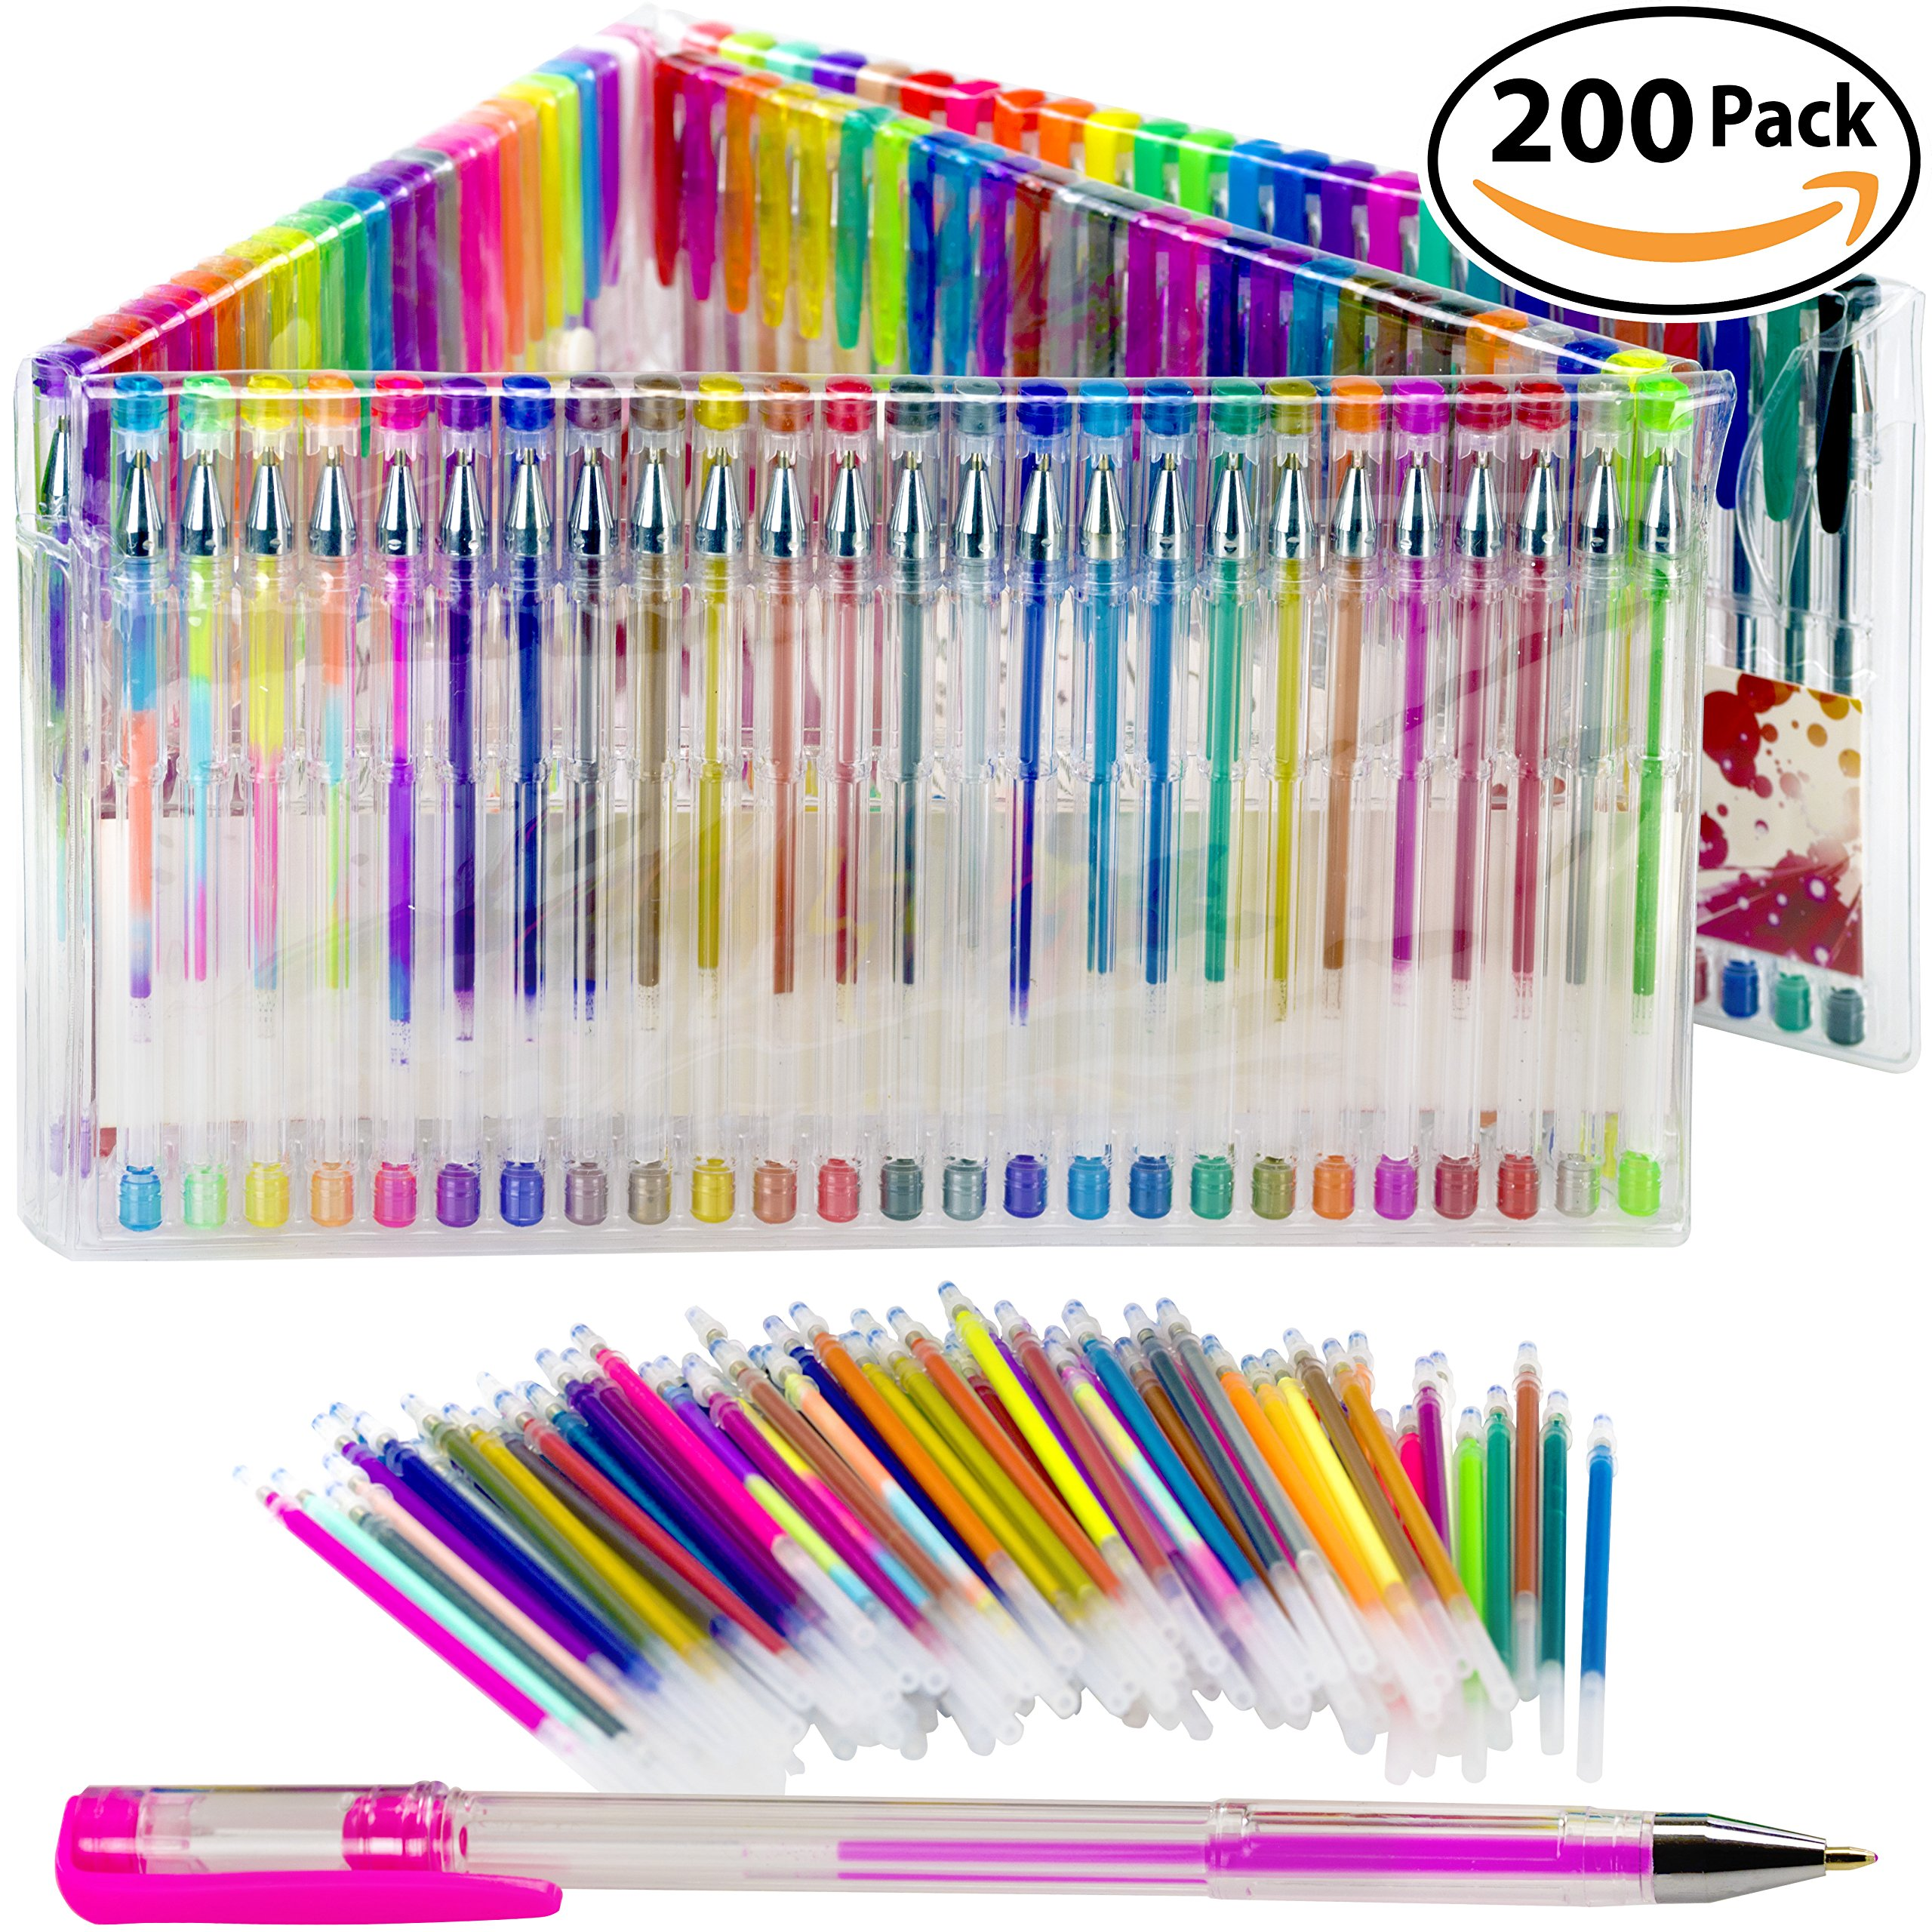 Gel Pen Variety Pack for Adult Coloring Books. Durable, Non-Toxic Set of 100 Glitter, Metallic, Classic, Neon, Swirl and Pastel Colored Pens and Refills. Great Christmas or Birthday Gift